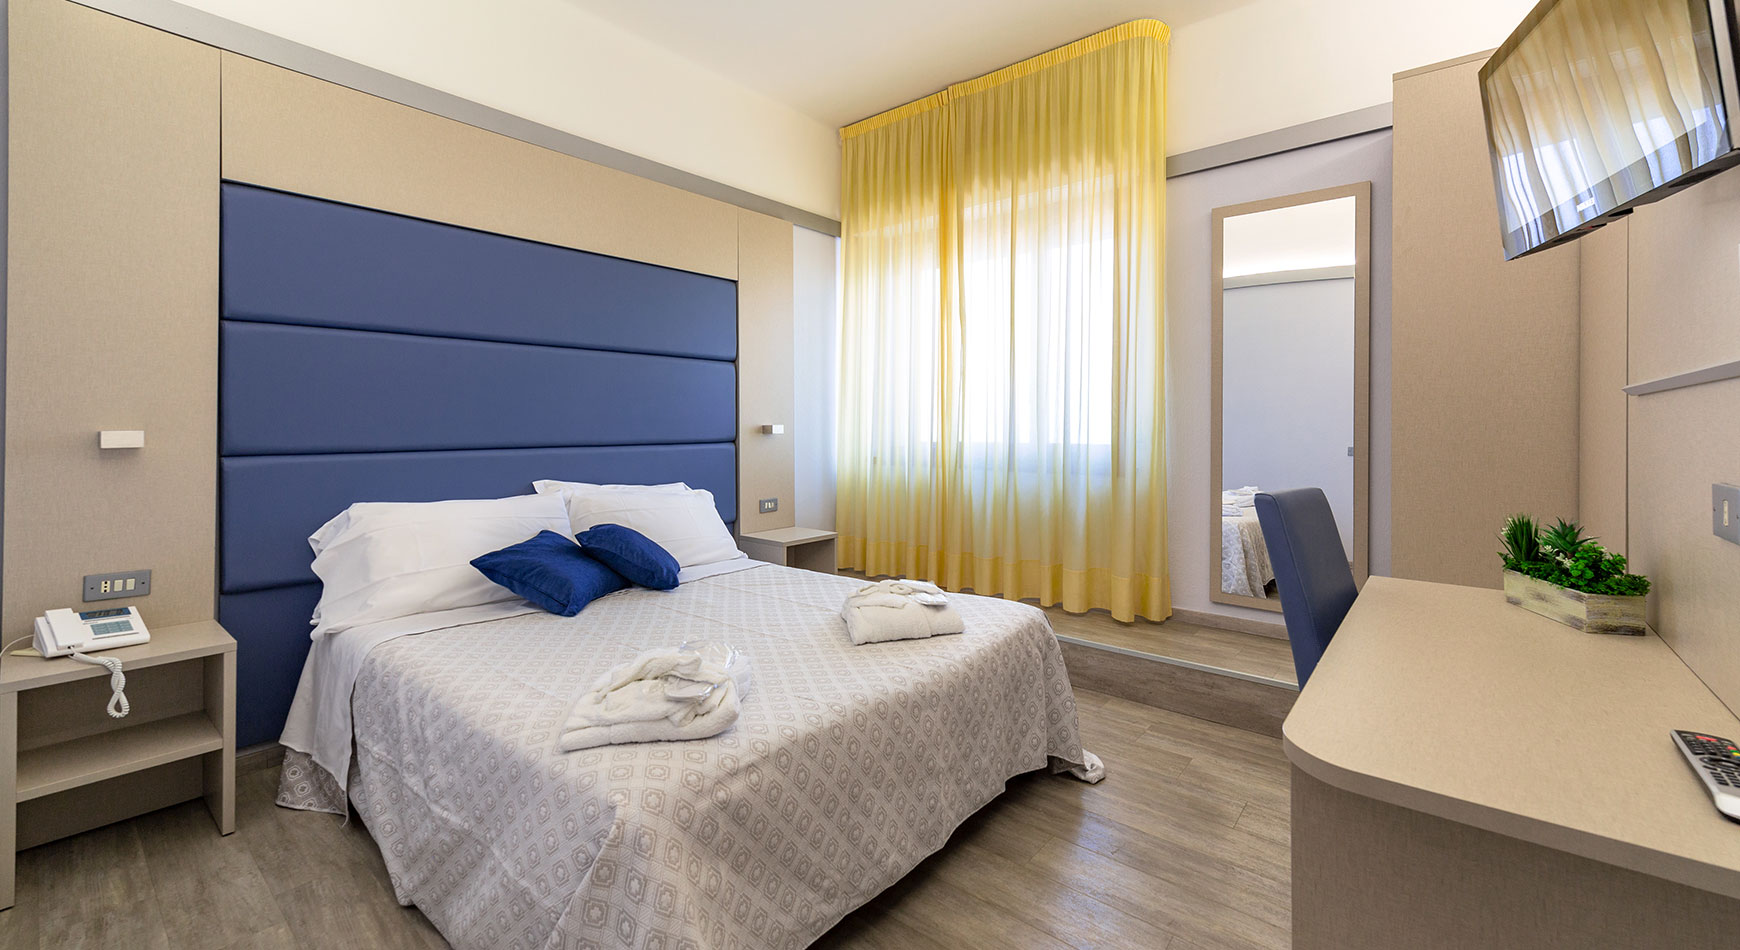 Camere hotel 4 stelle Fano